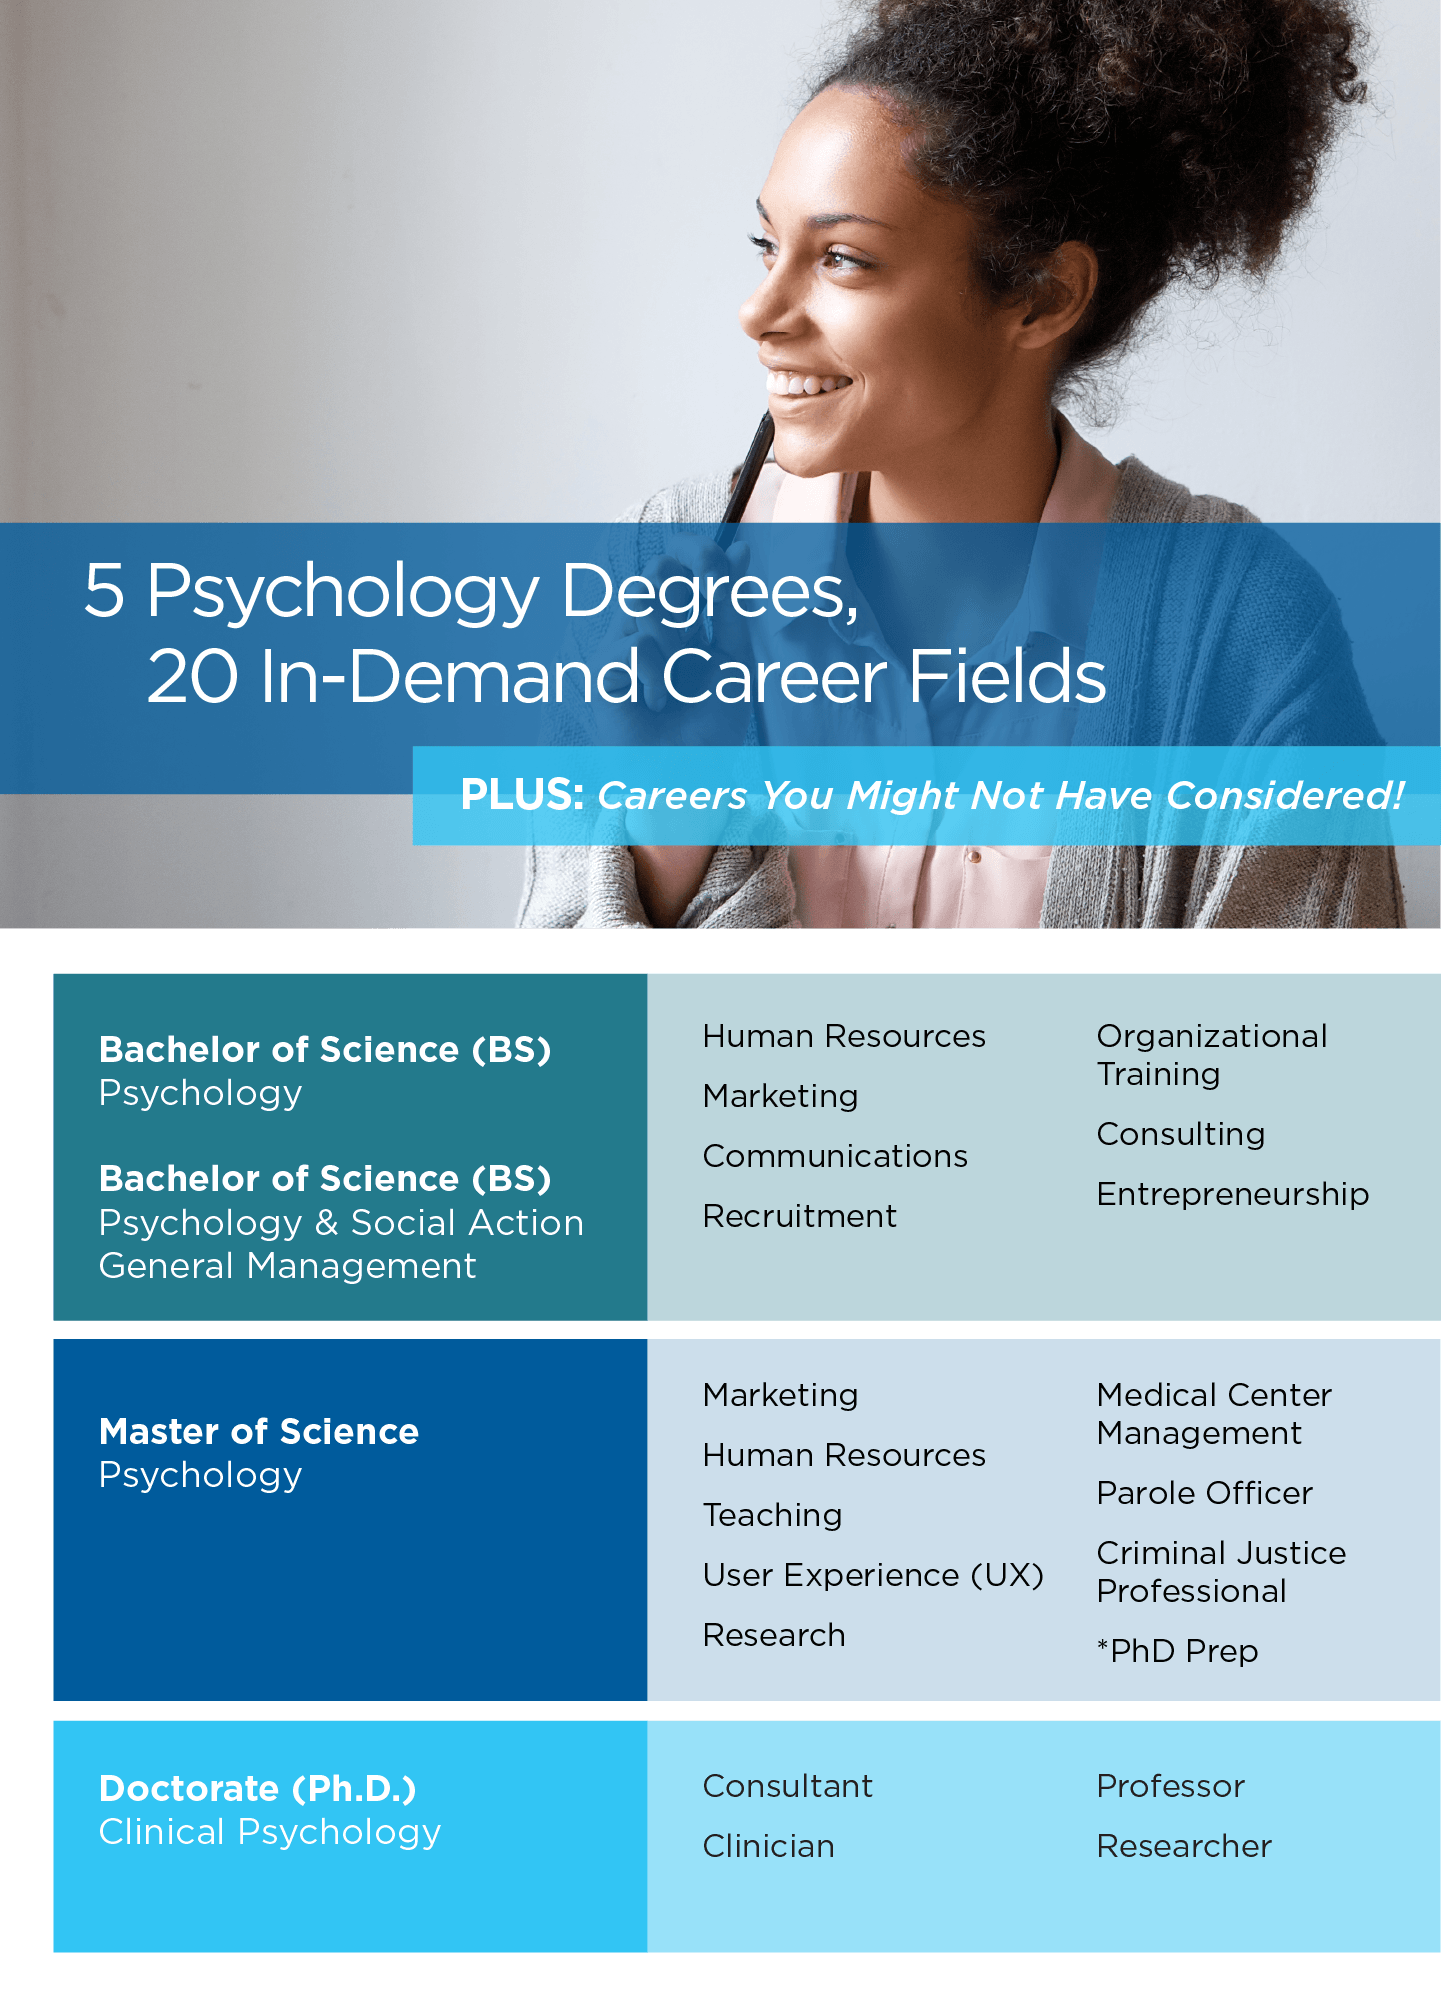 5 Psychology Degrees, 20 In-Demand Career Fields Infographic